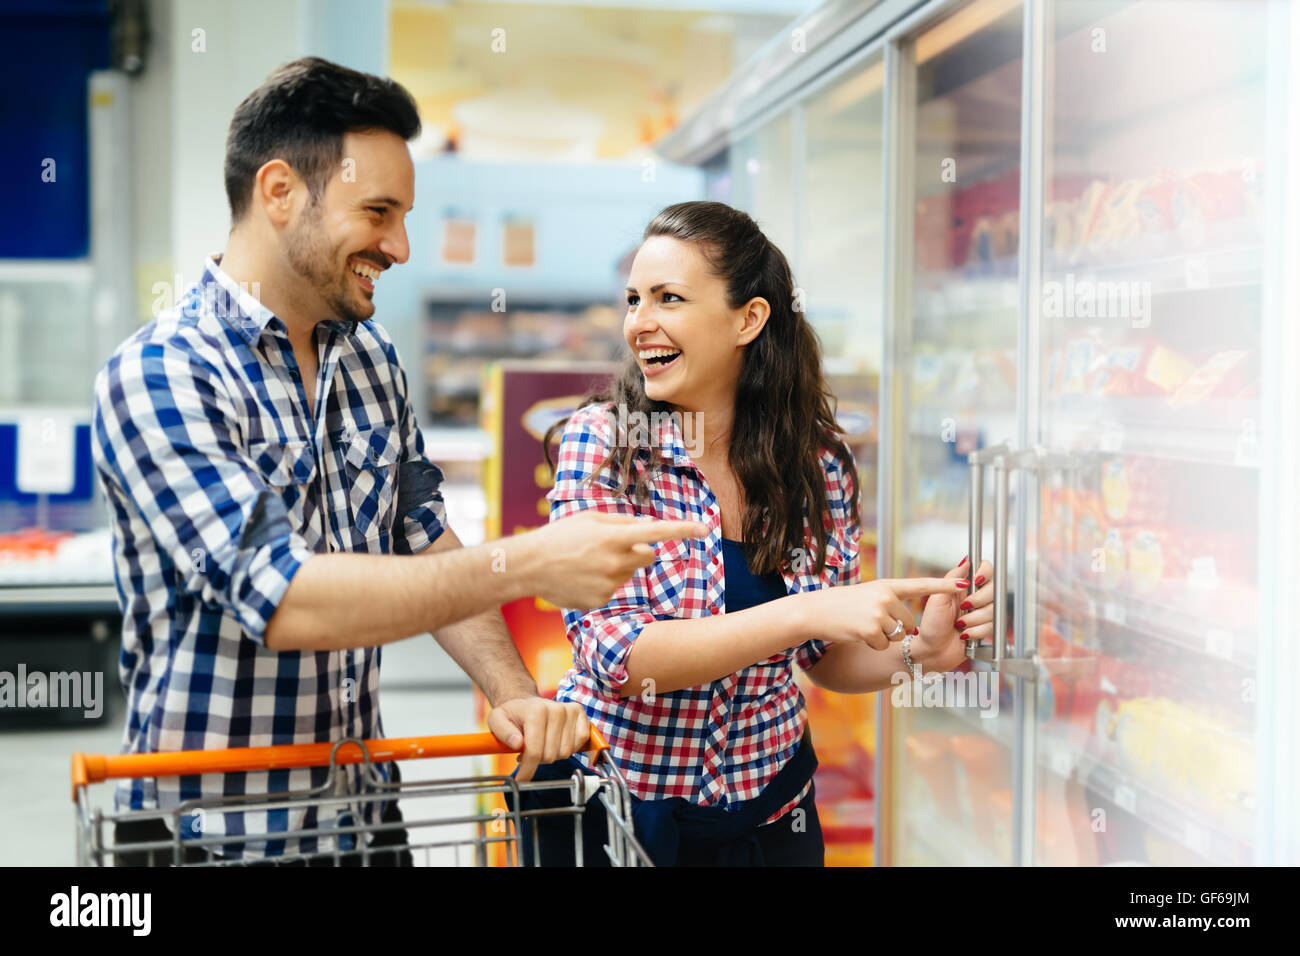 Couple shopping together  in supermarket - Stock Image